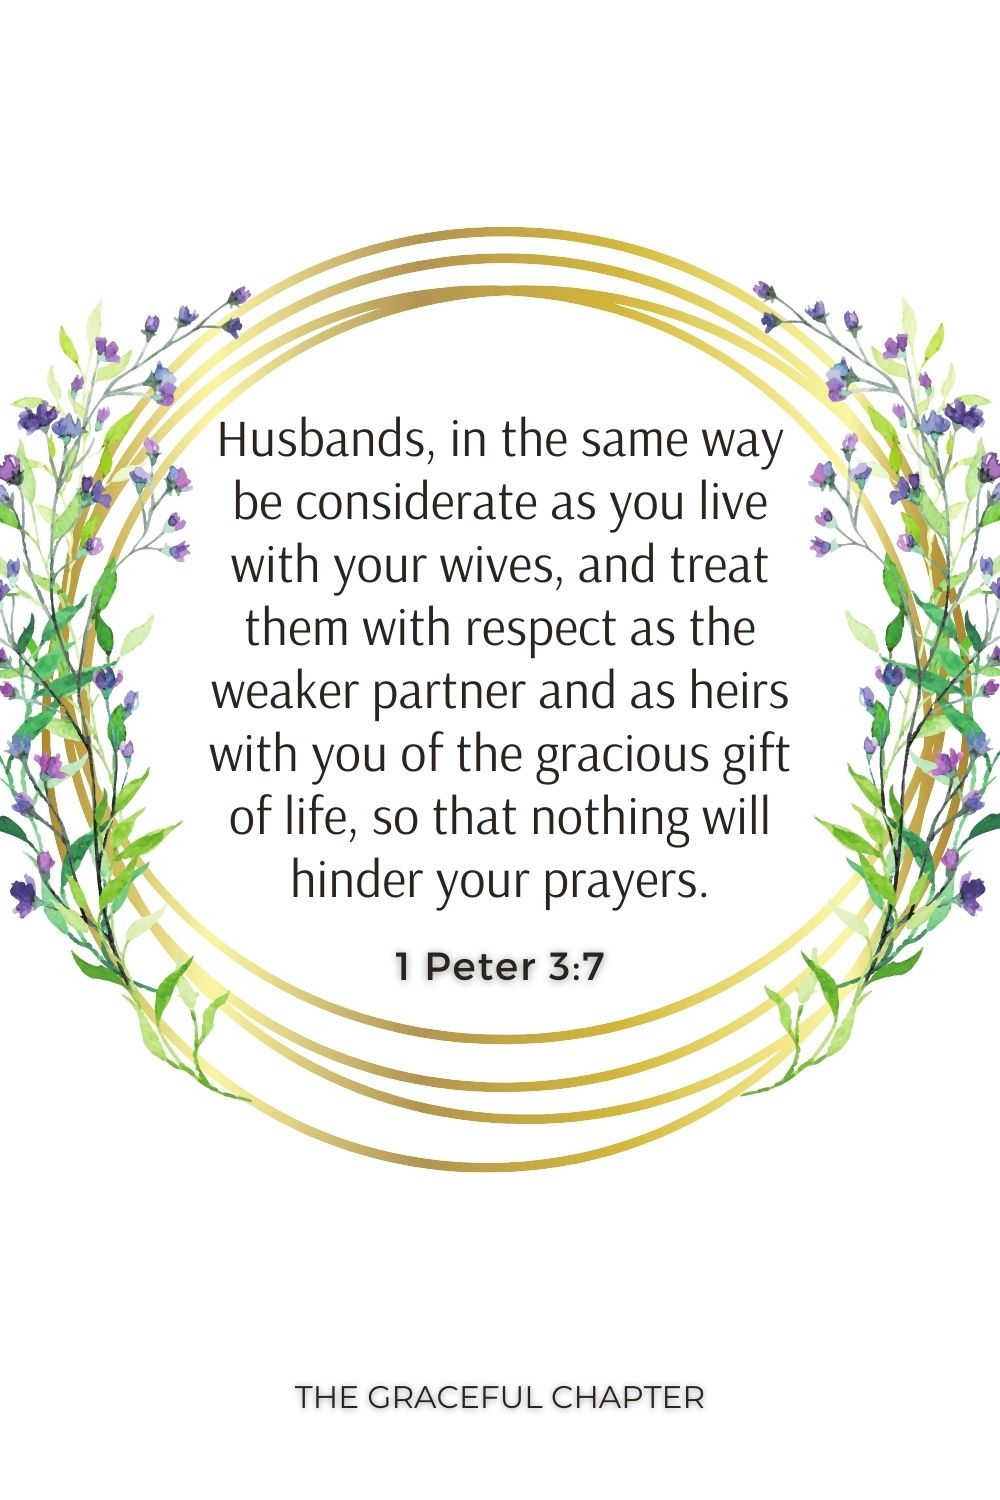 Husbands, in the same way be considerate as you live with your wives, and treat them with respect as the weaker partner and as heirs with you of the gracious gift of life, so that nothing will hinder your prayers. 1 Peter 3:7